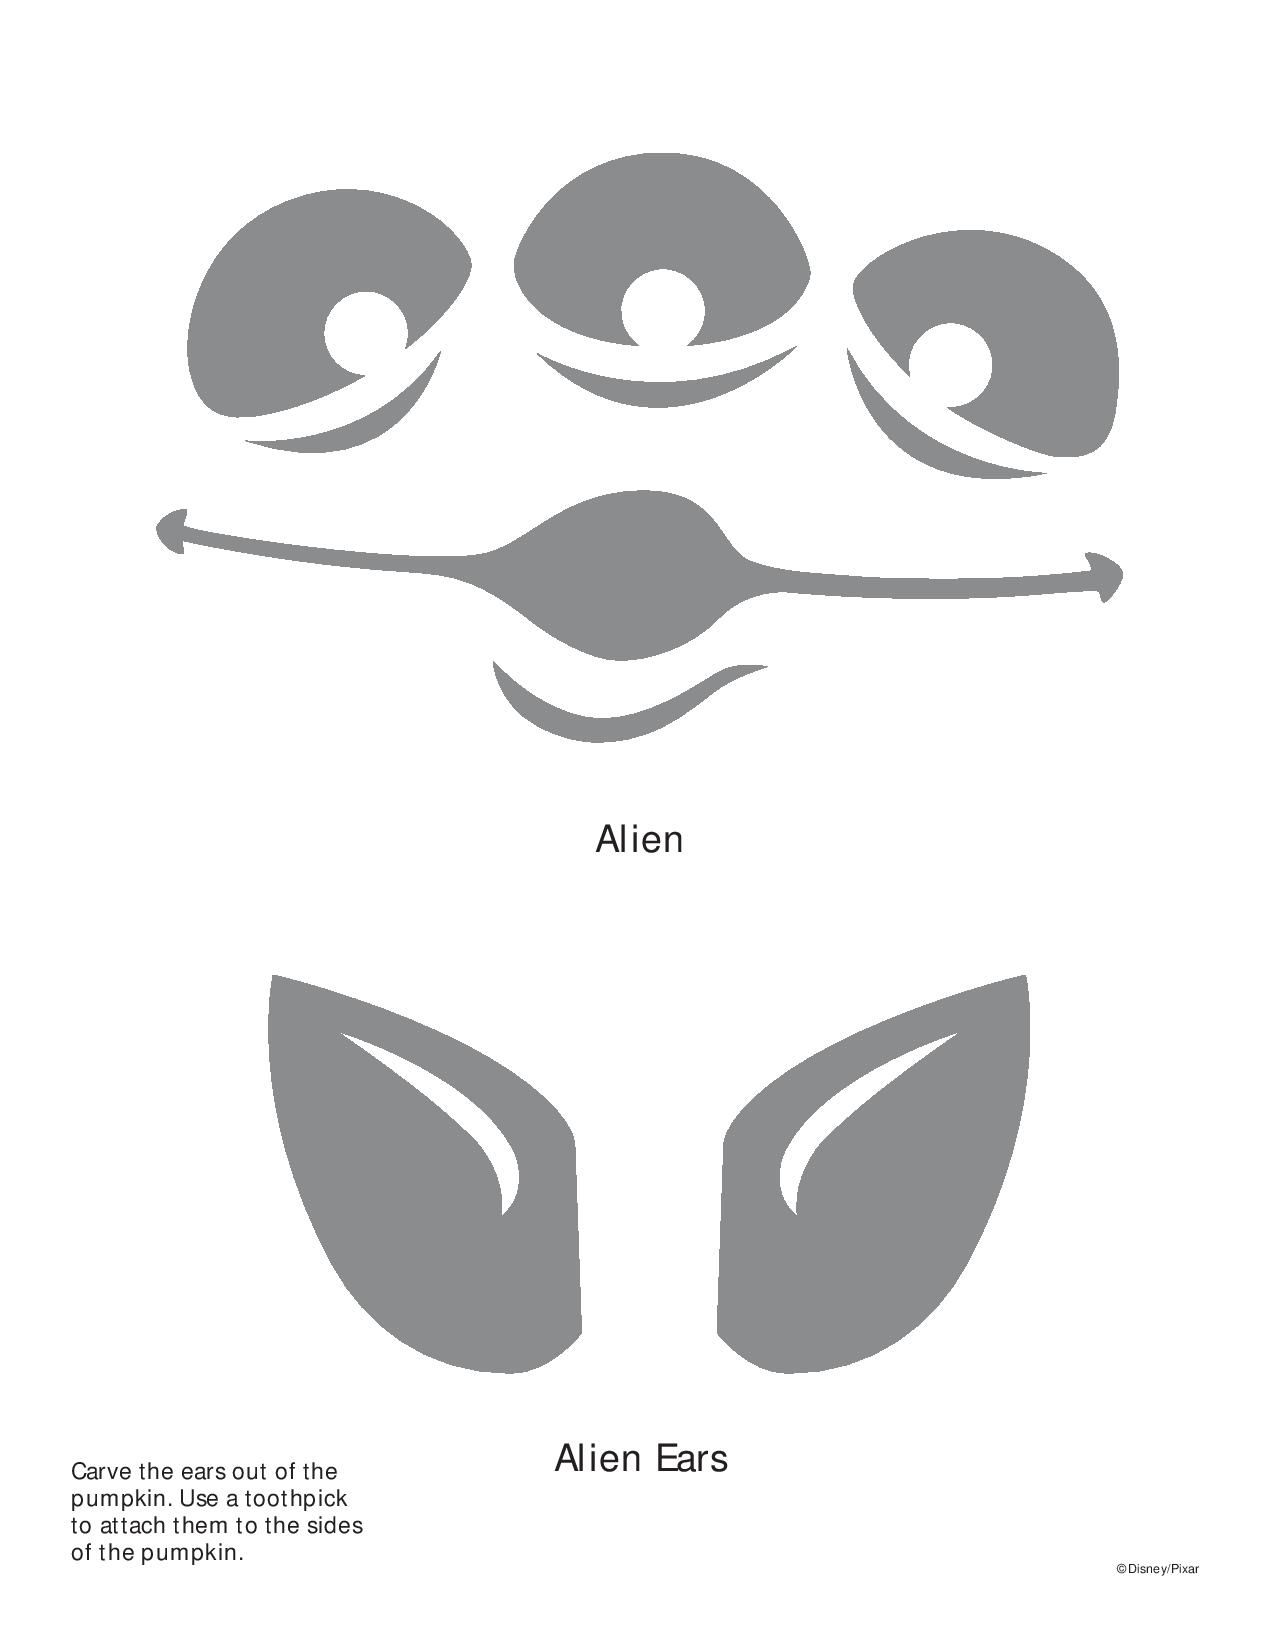 alien toy story pumpkin stencil  u2026  with images